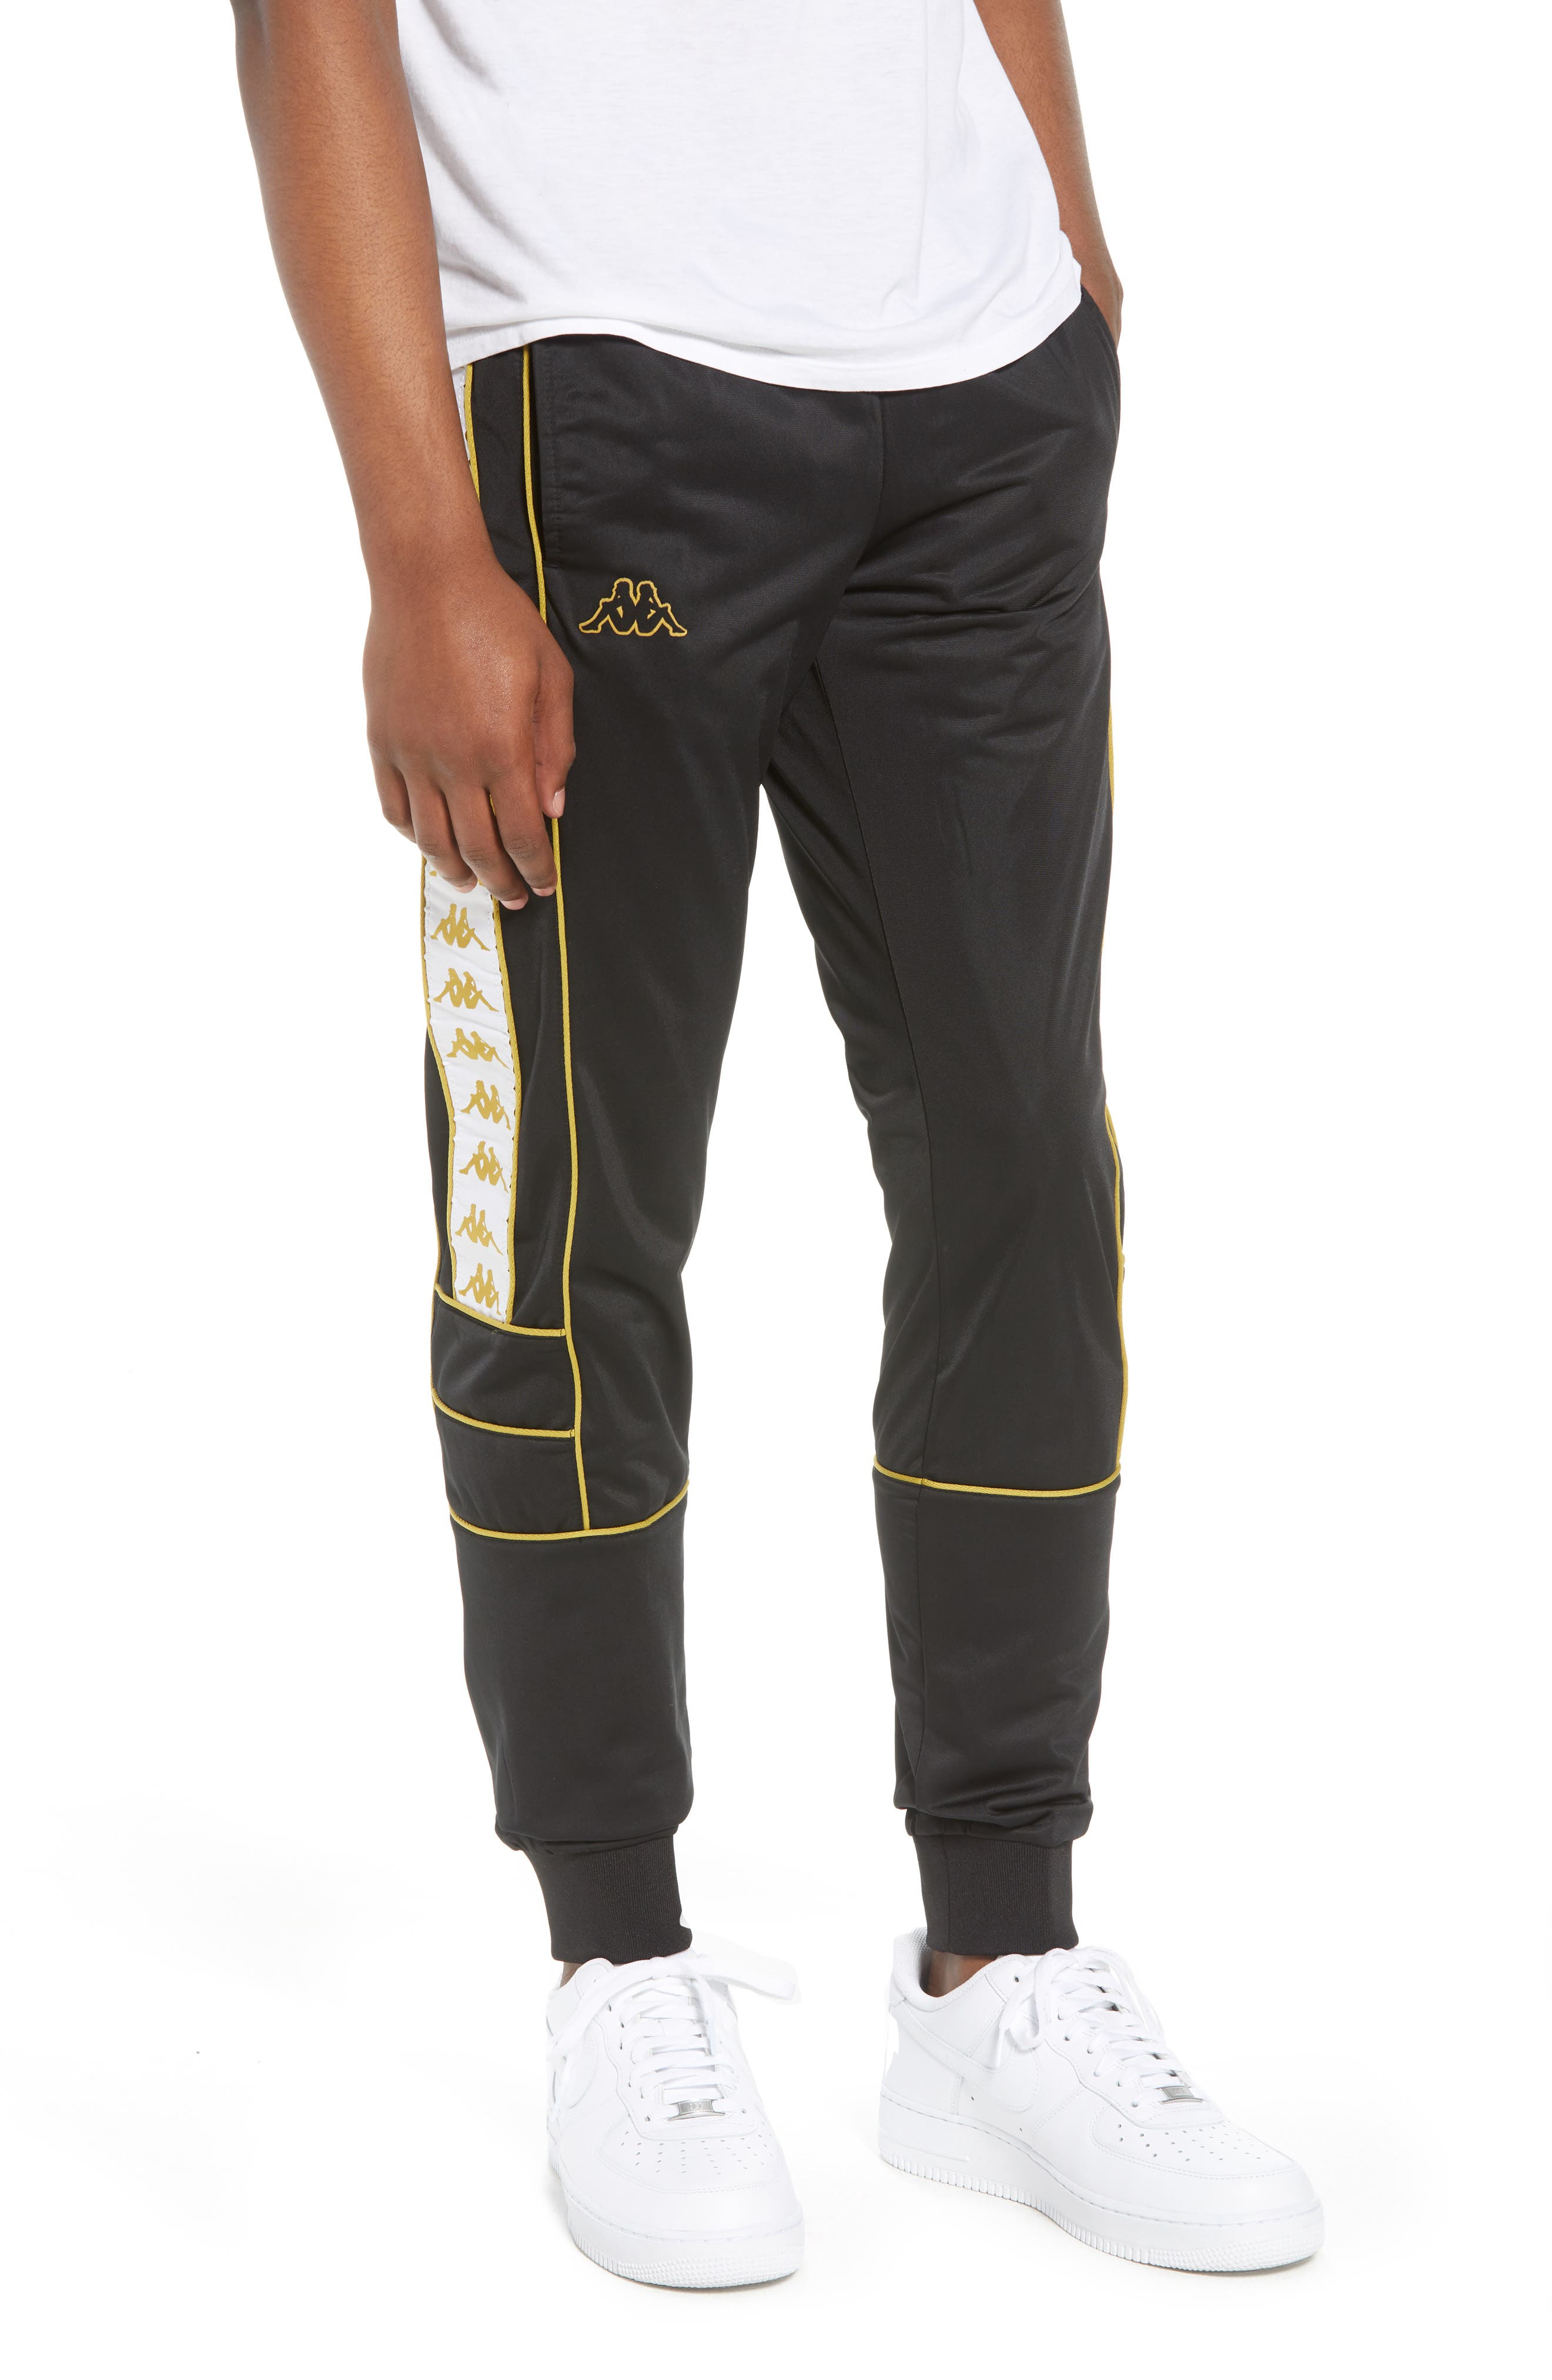 Racing Track Pants,                         Main,                         color, Black/ White Gold